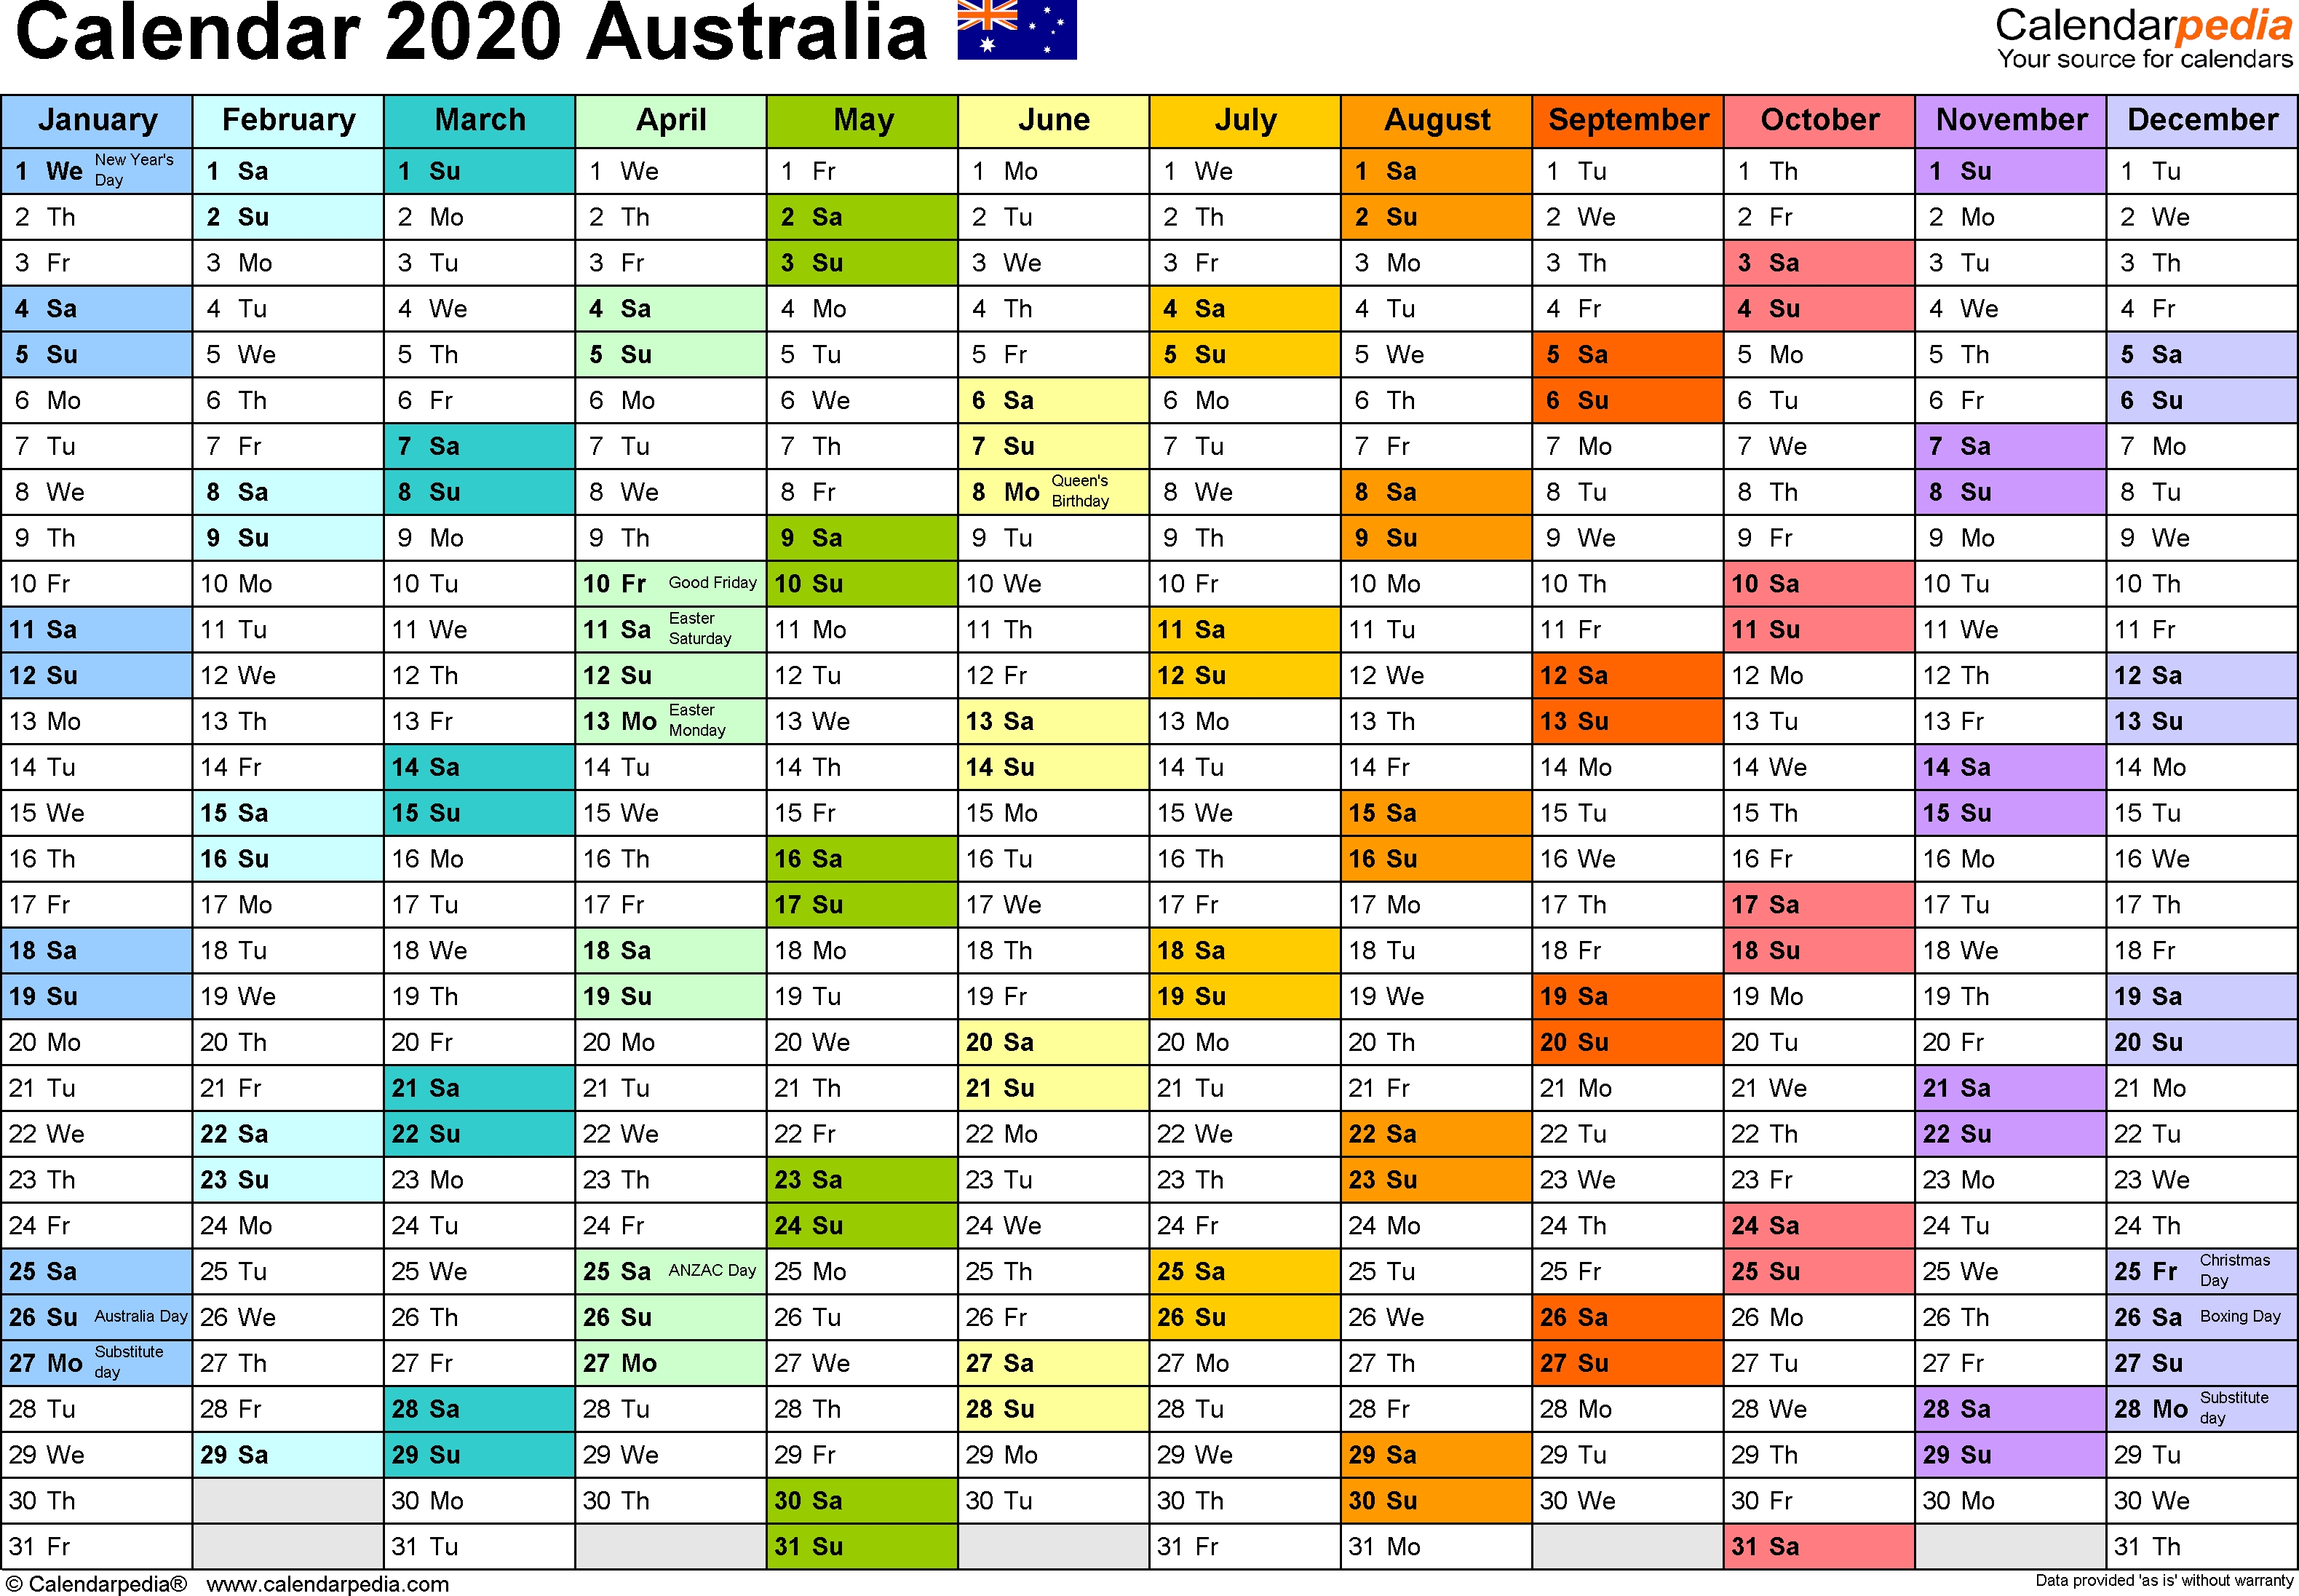 Australia Calendar 2020 - Free Printable Excel Templates  Financial Year Dates 2020 2020  Australia